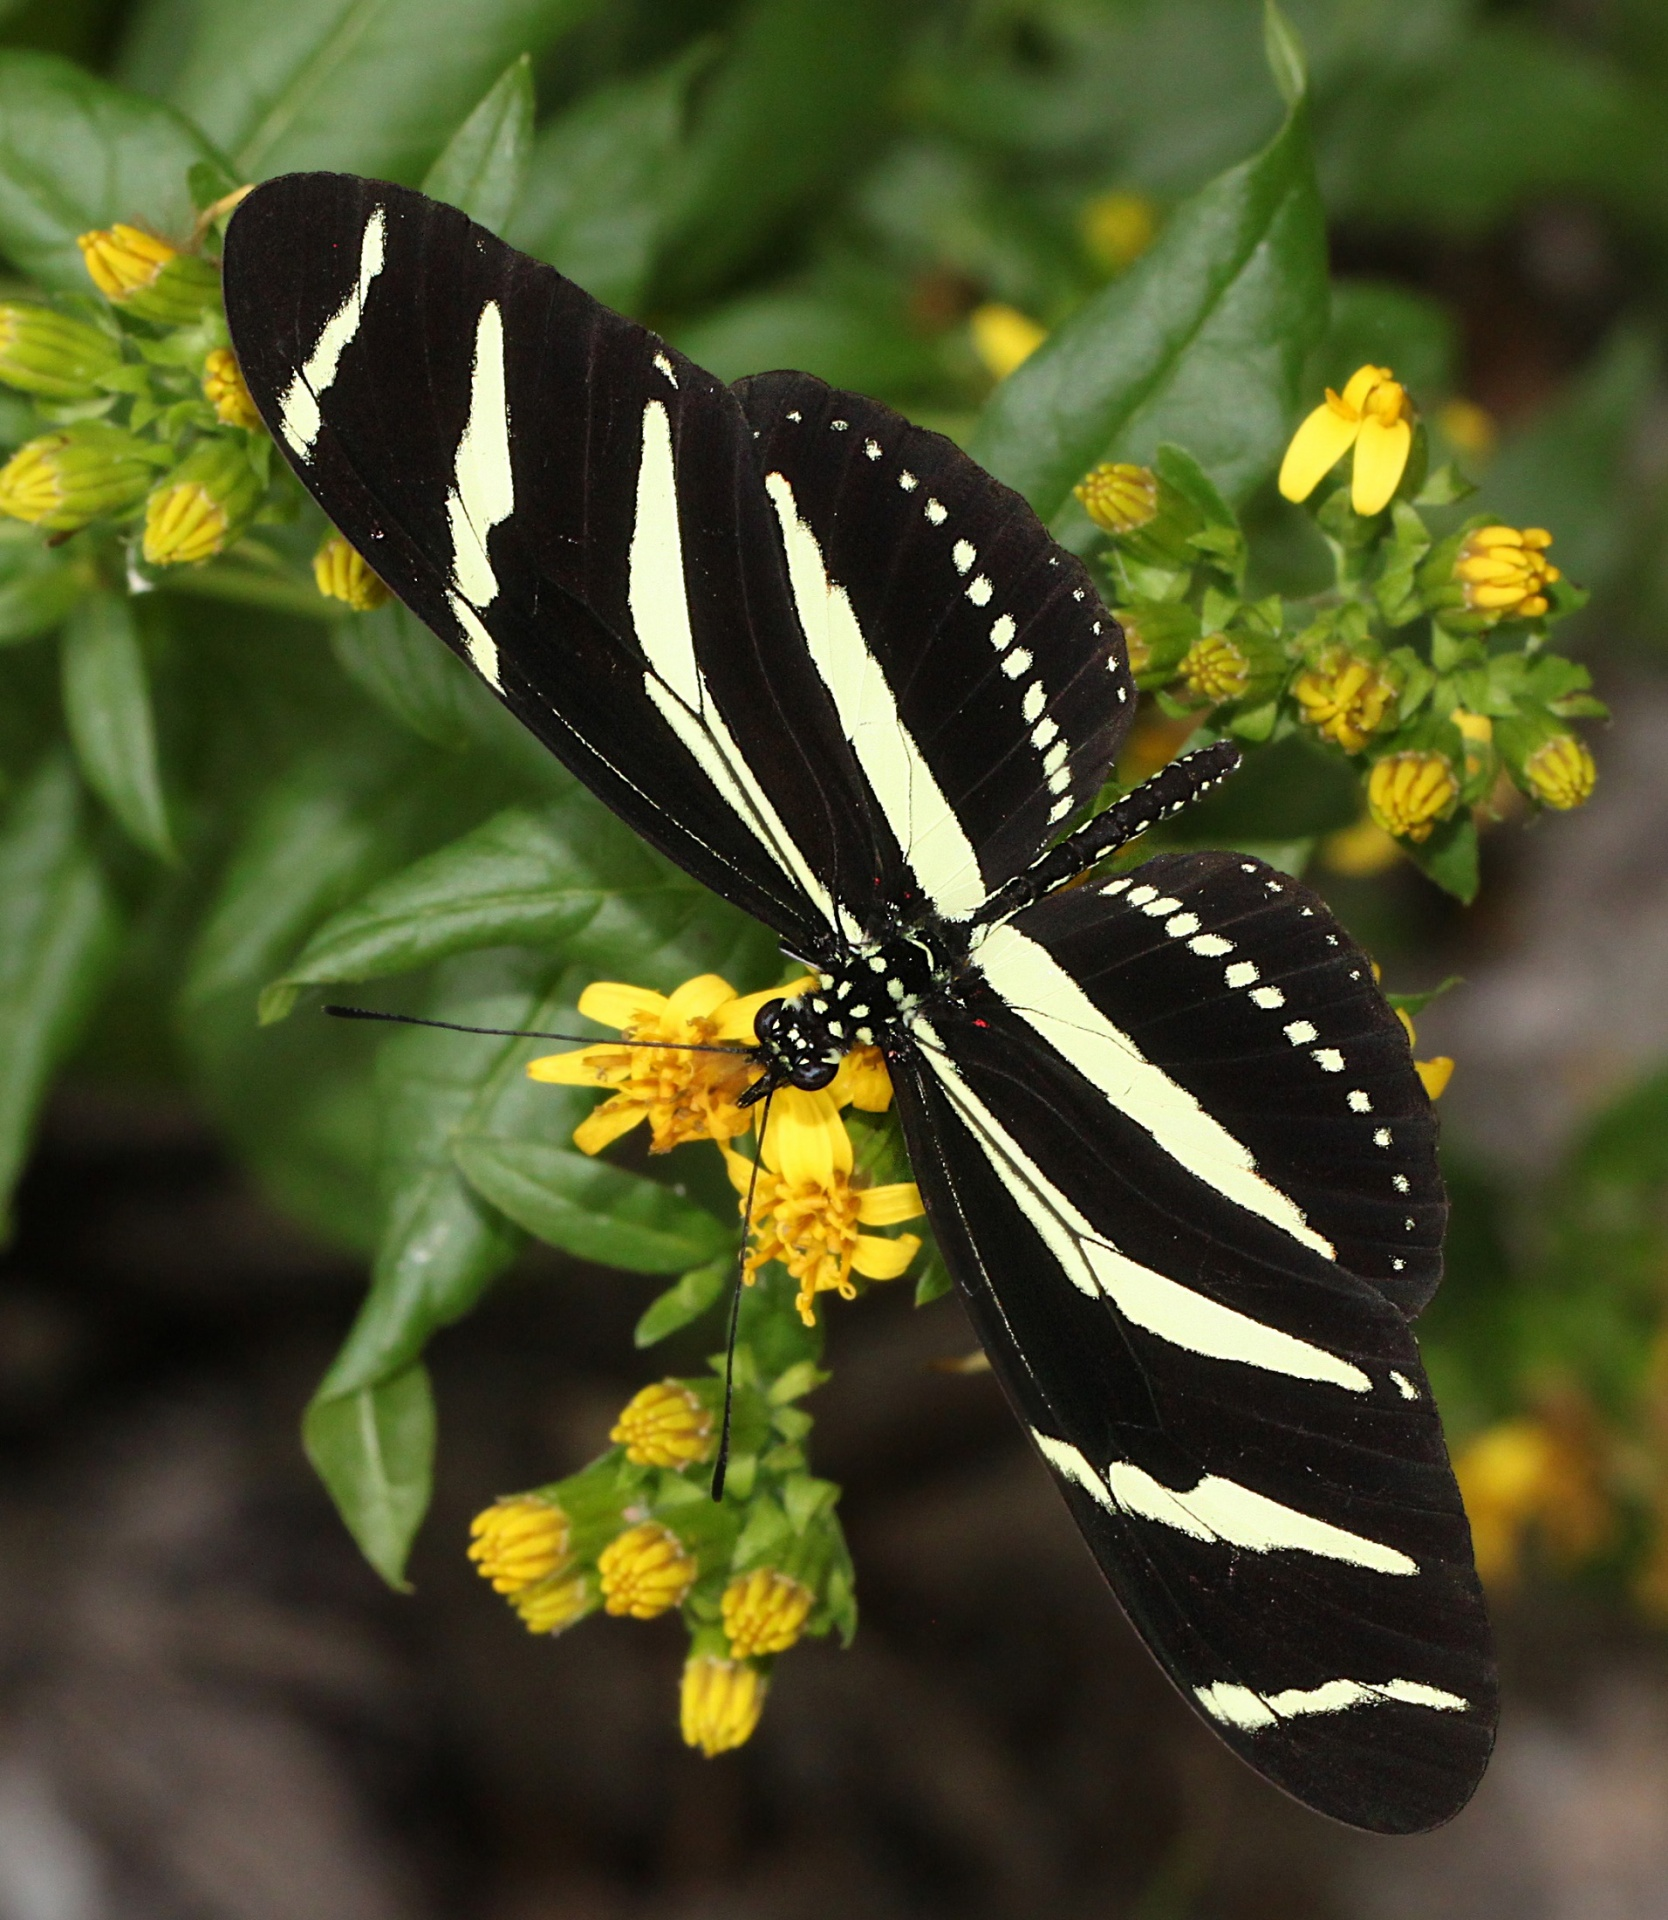 Heliconius charithonia -zebra longwing - black colored butterfly species